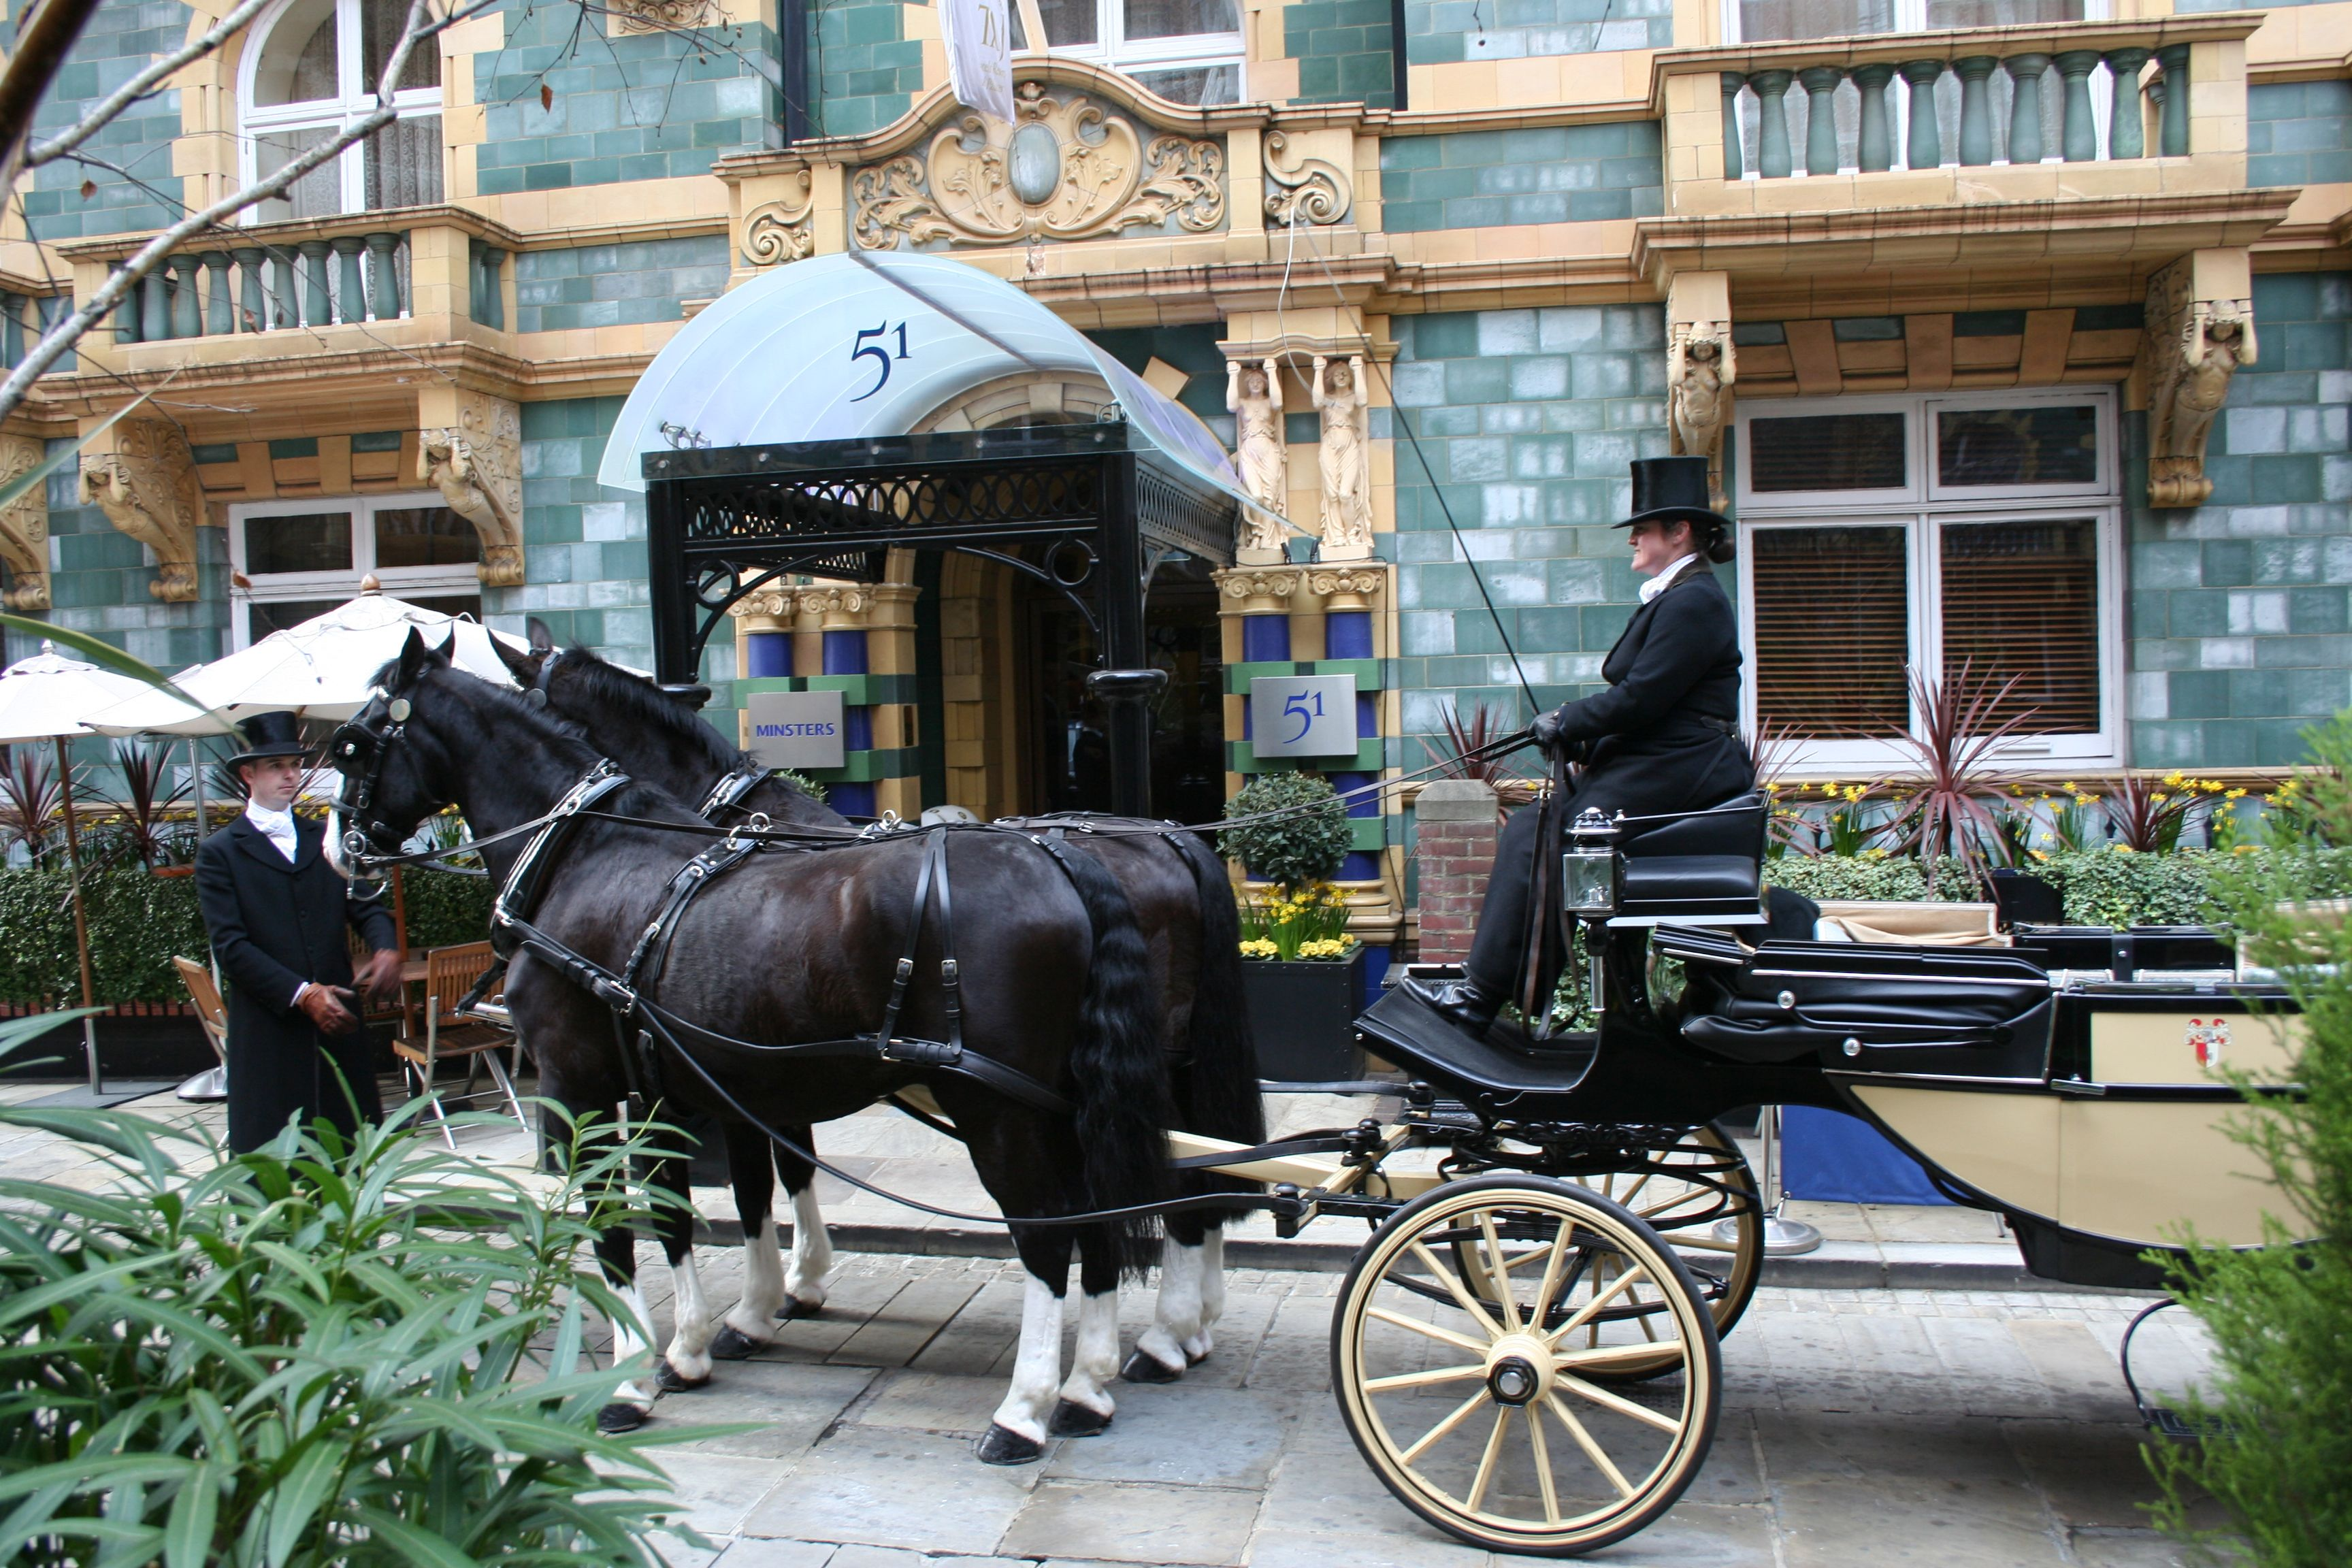 Horse & Carriage sustainable transportation that allows for real